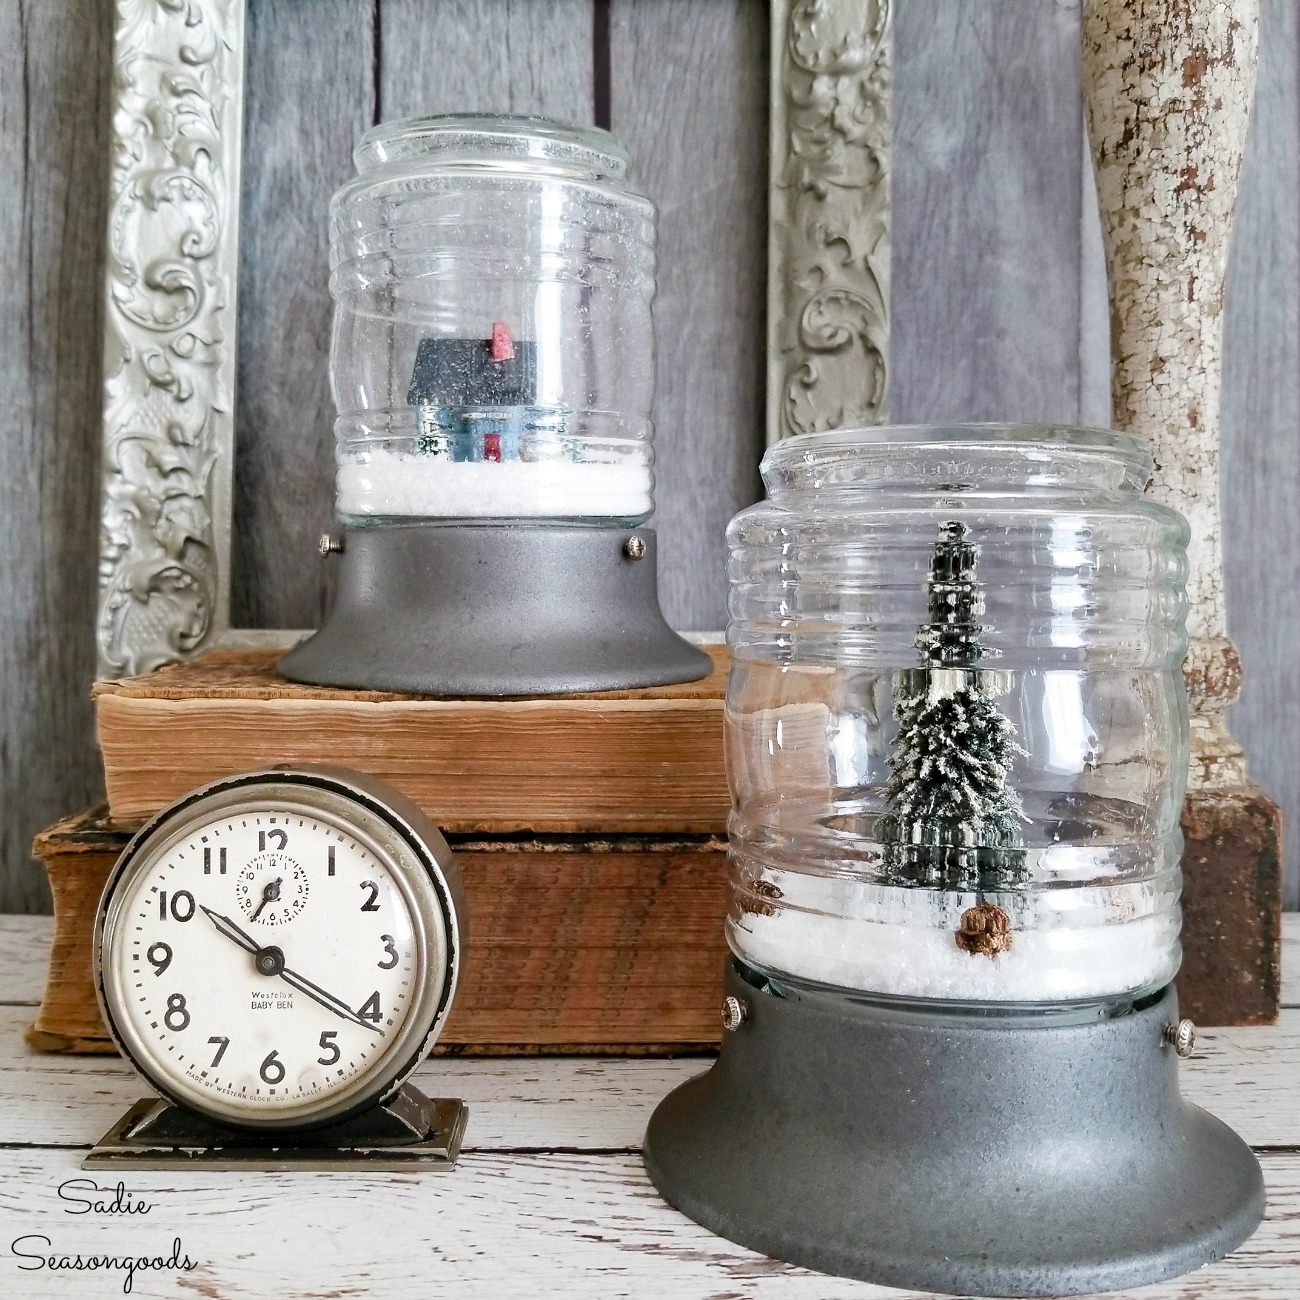 Winter Decorations Inside the Industrial Light Fixtures